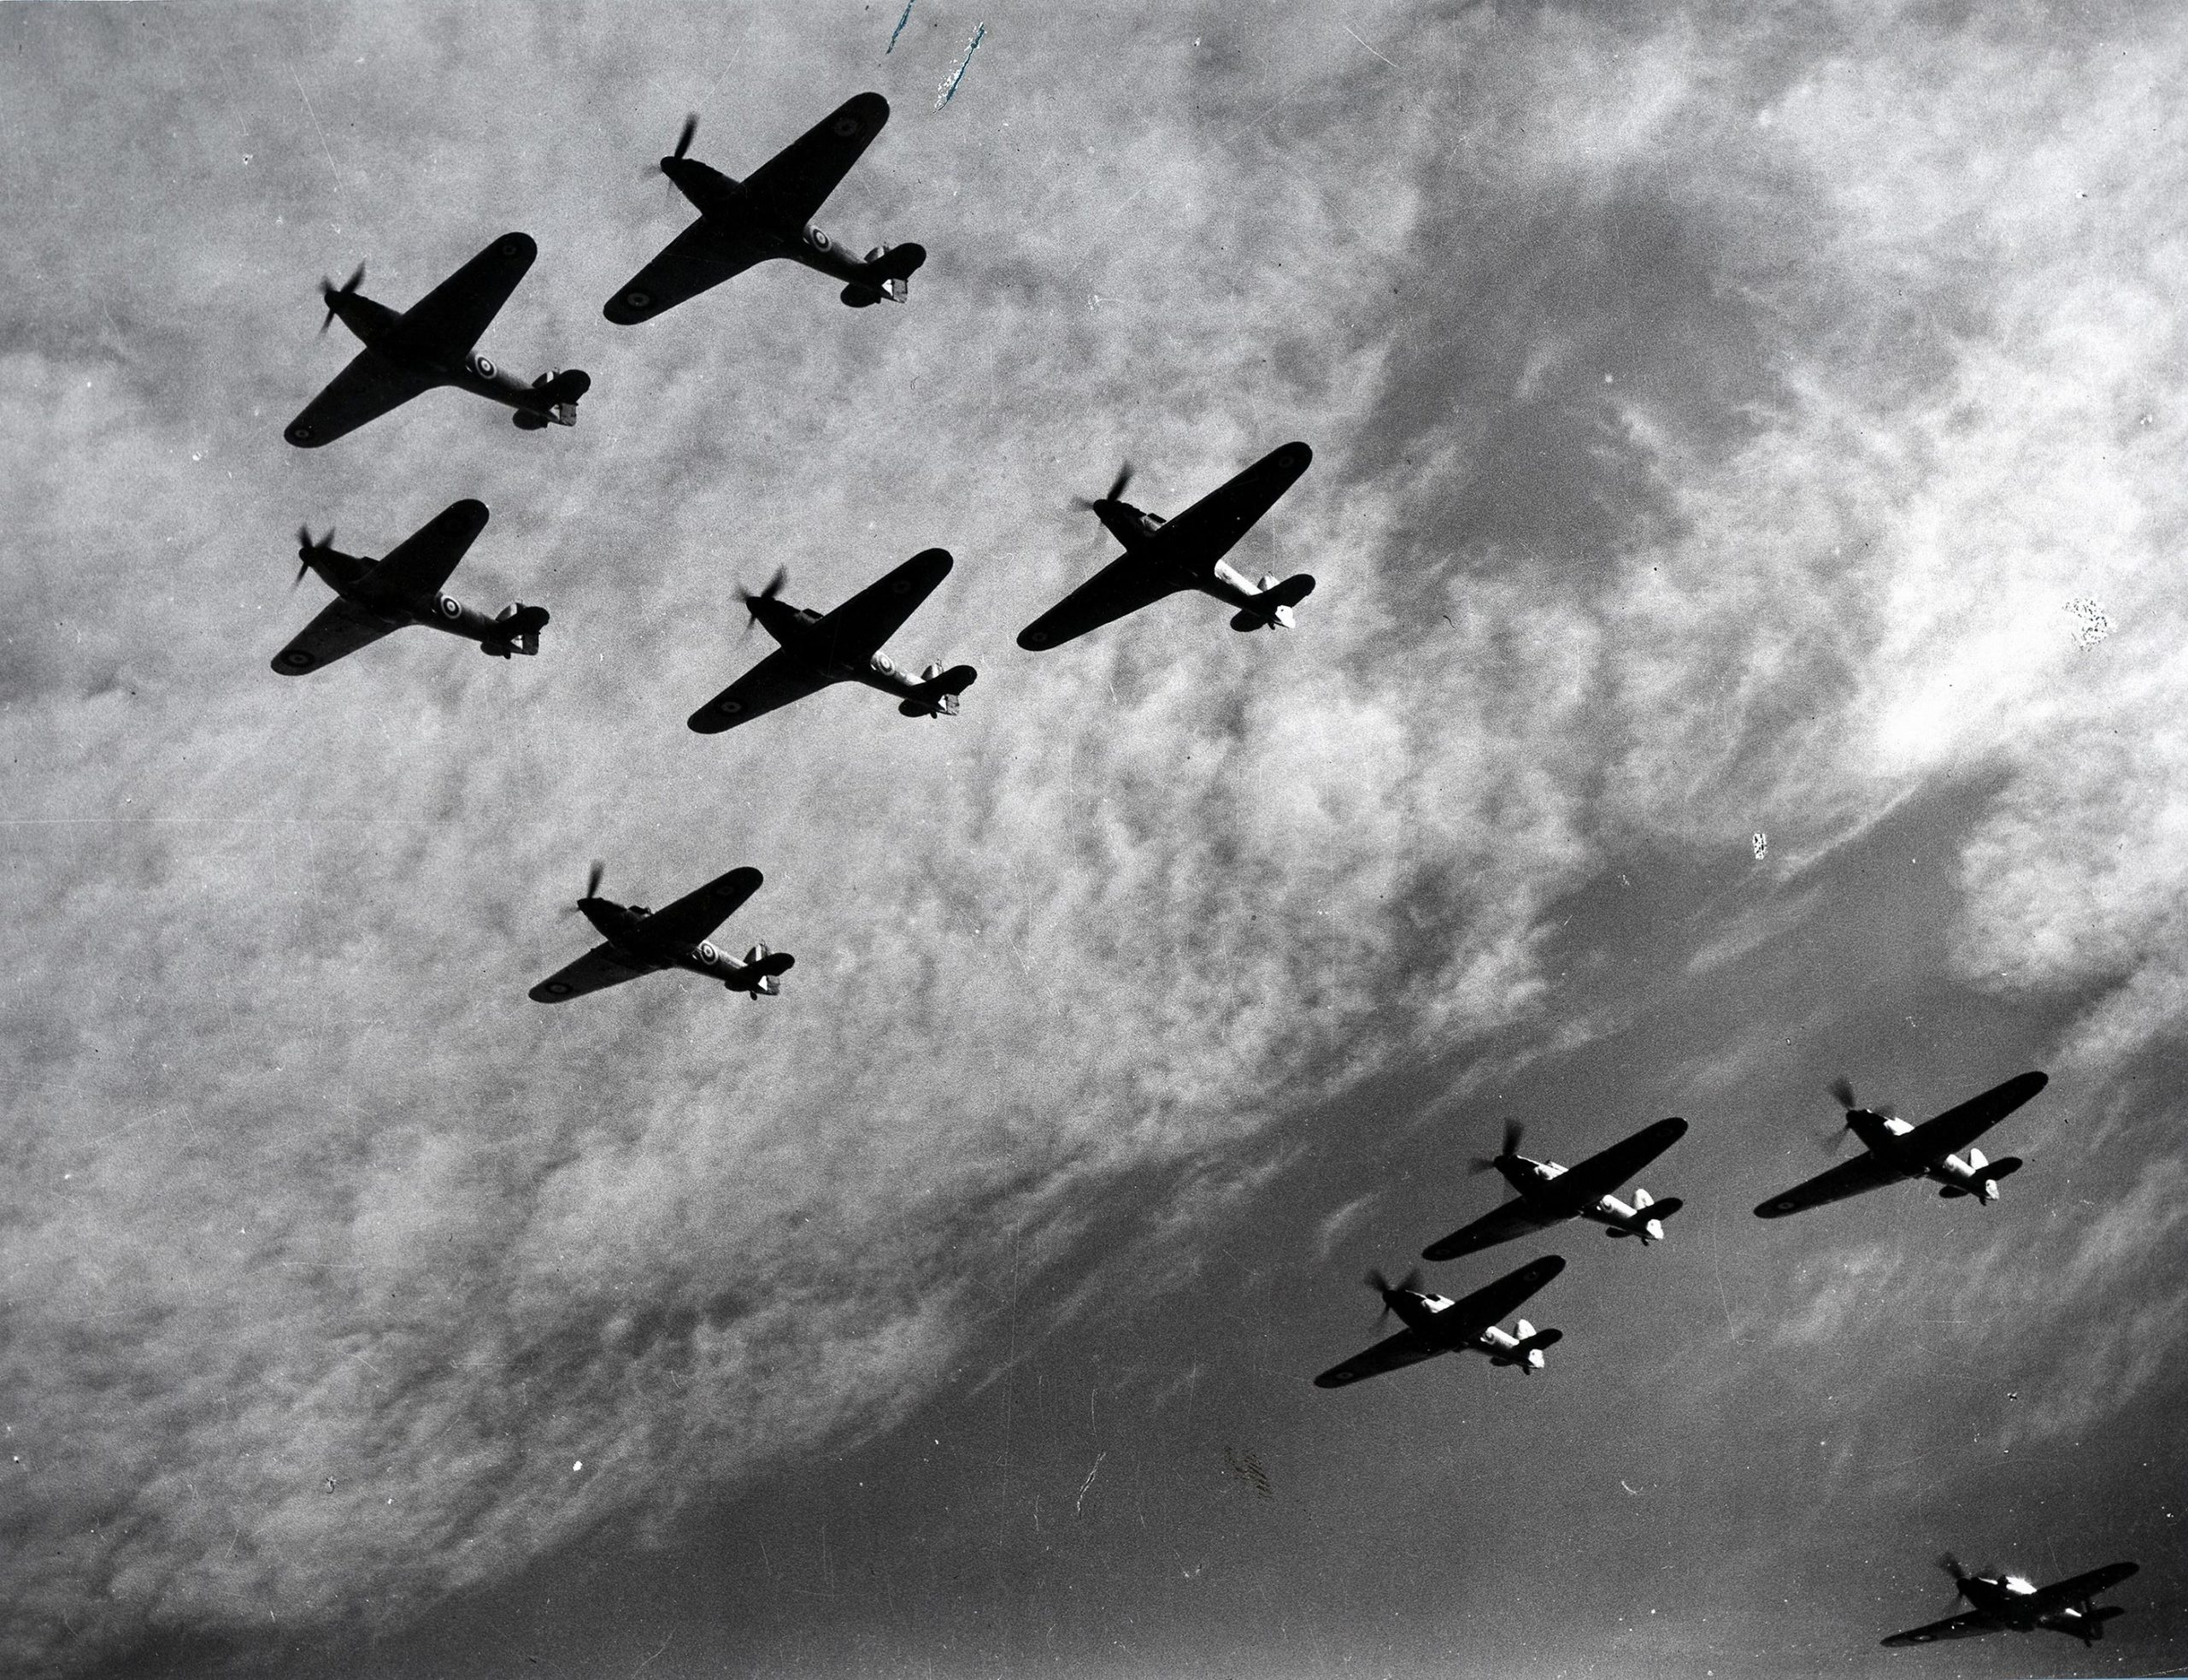 Famous Battle of Britain 'What If' Scenarios Put to the Test by Mathematicians - SciTechDaily